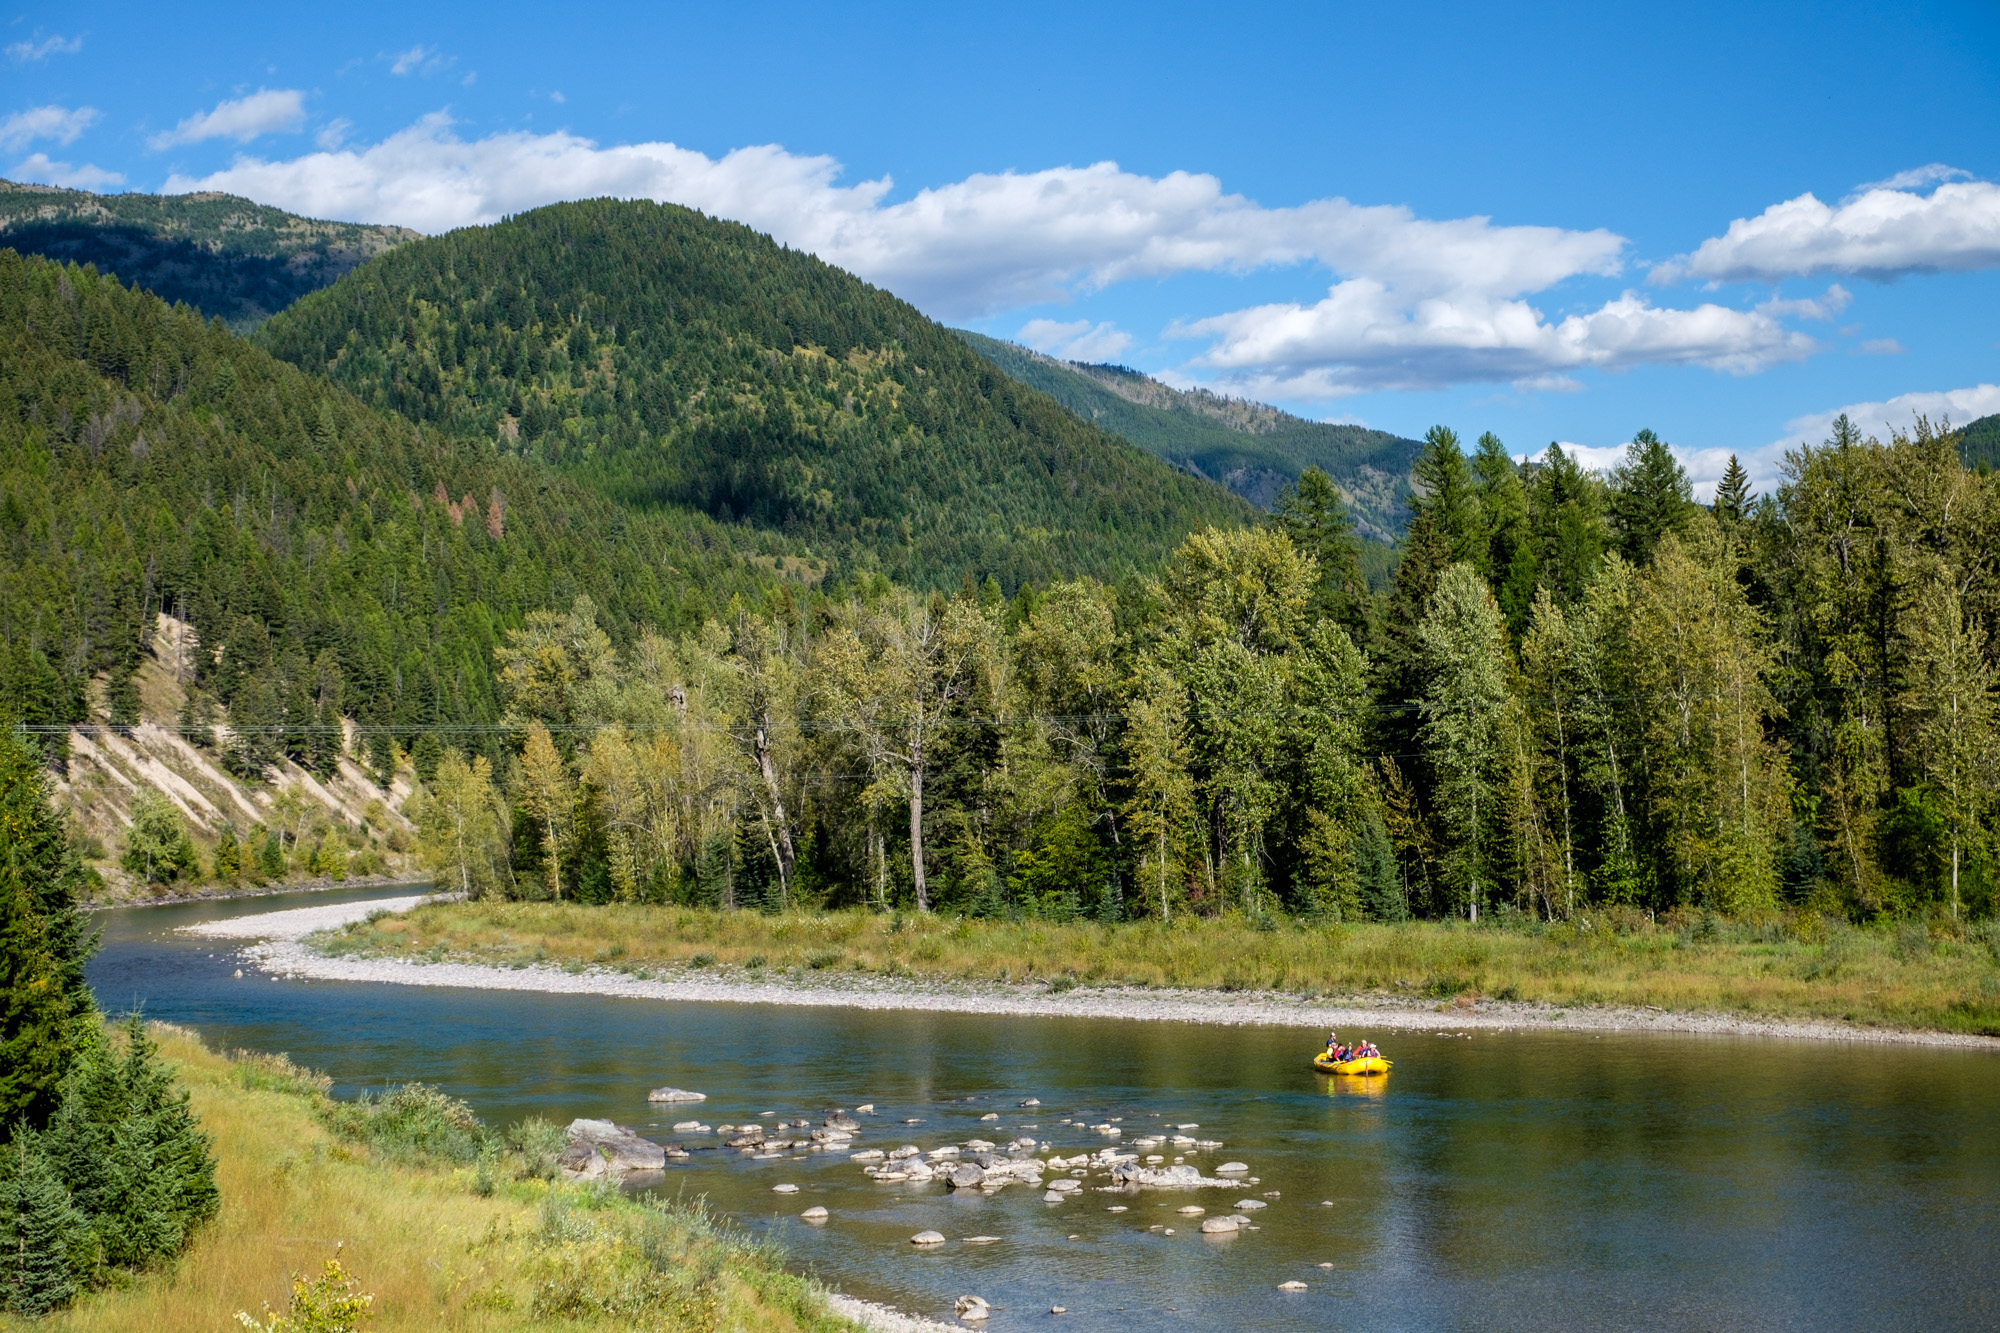 Floating the Middle Fork of the Flathead River is a fun thing to do on the west side of the park.